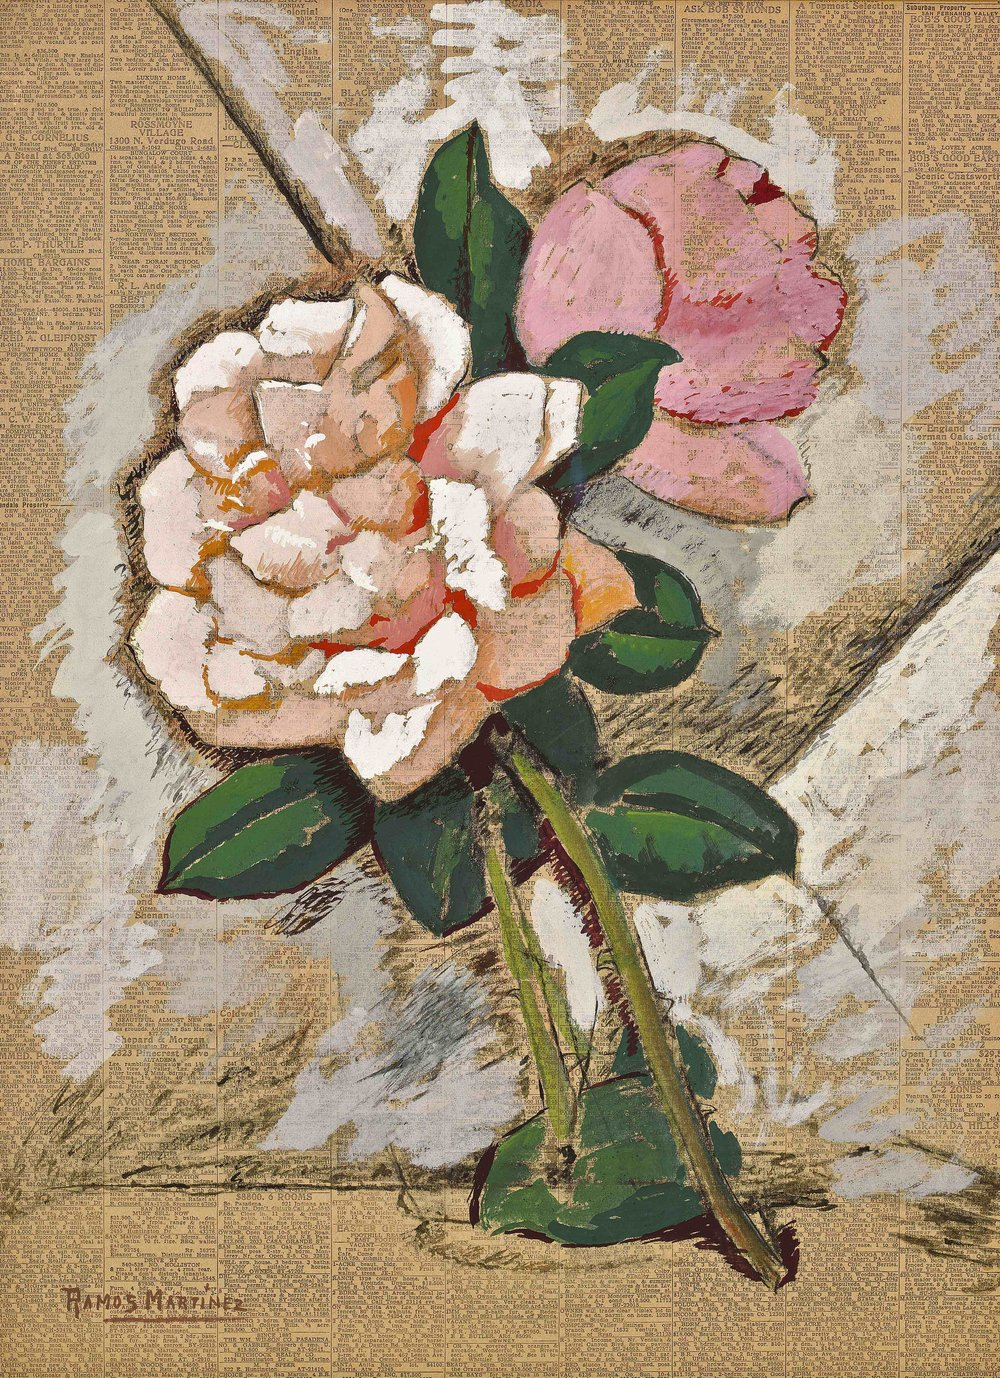 Flores / Blossoms  1946 tempera on newsprint / temple sobre papel periódico 22.5 x 16.5 inches; 57.2 x 41.9 centímetros